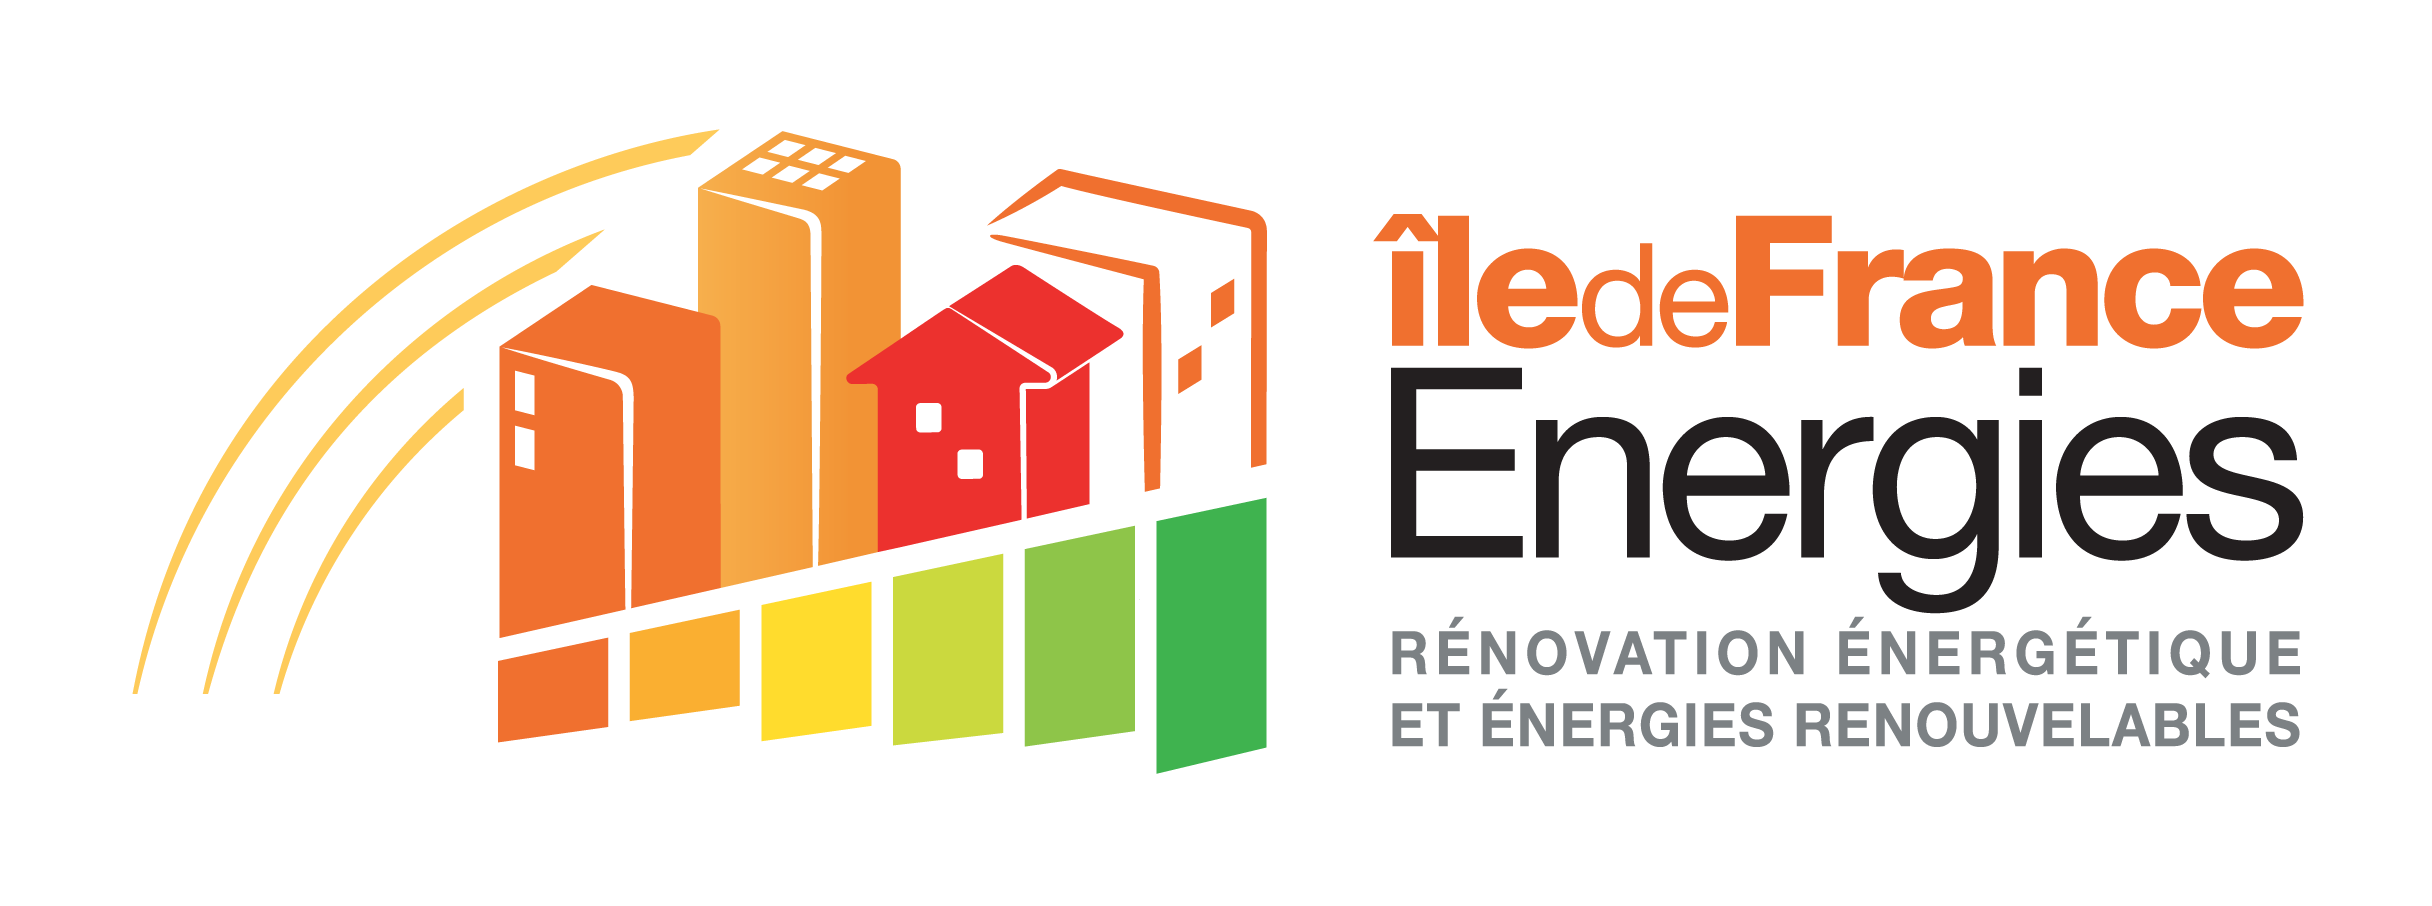 Financement Ile De France Energies